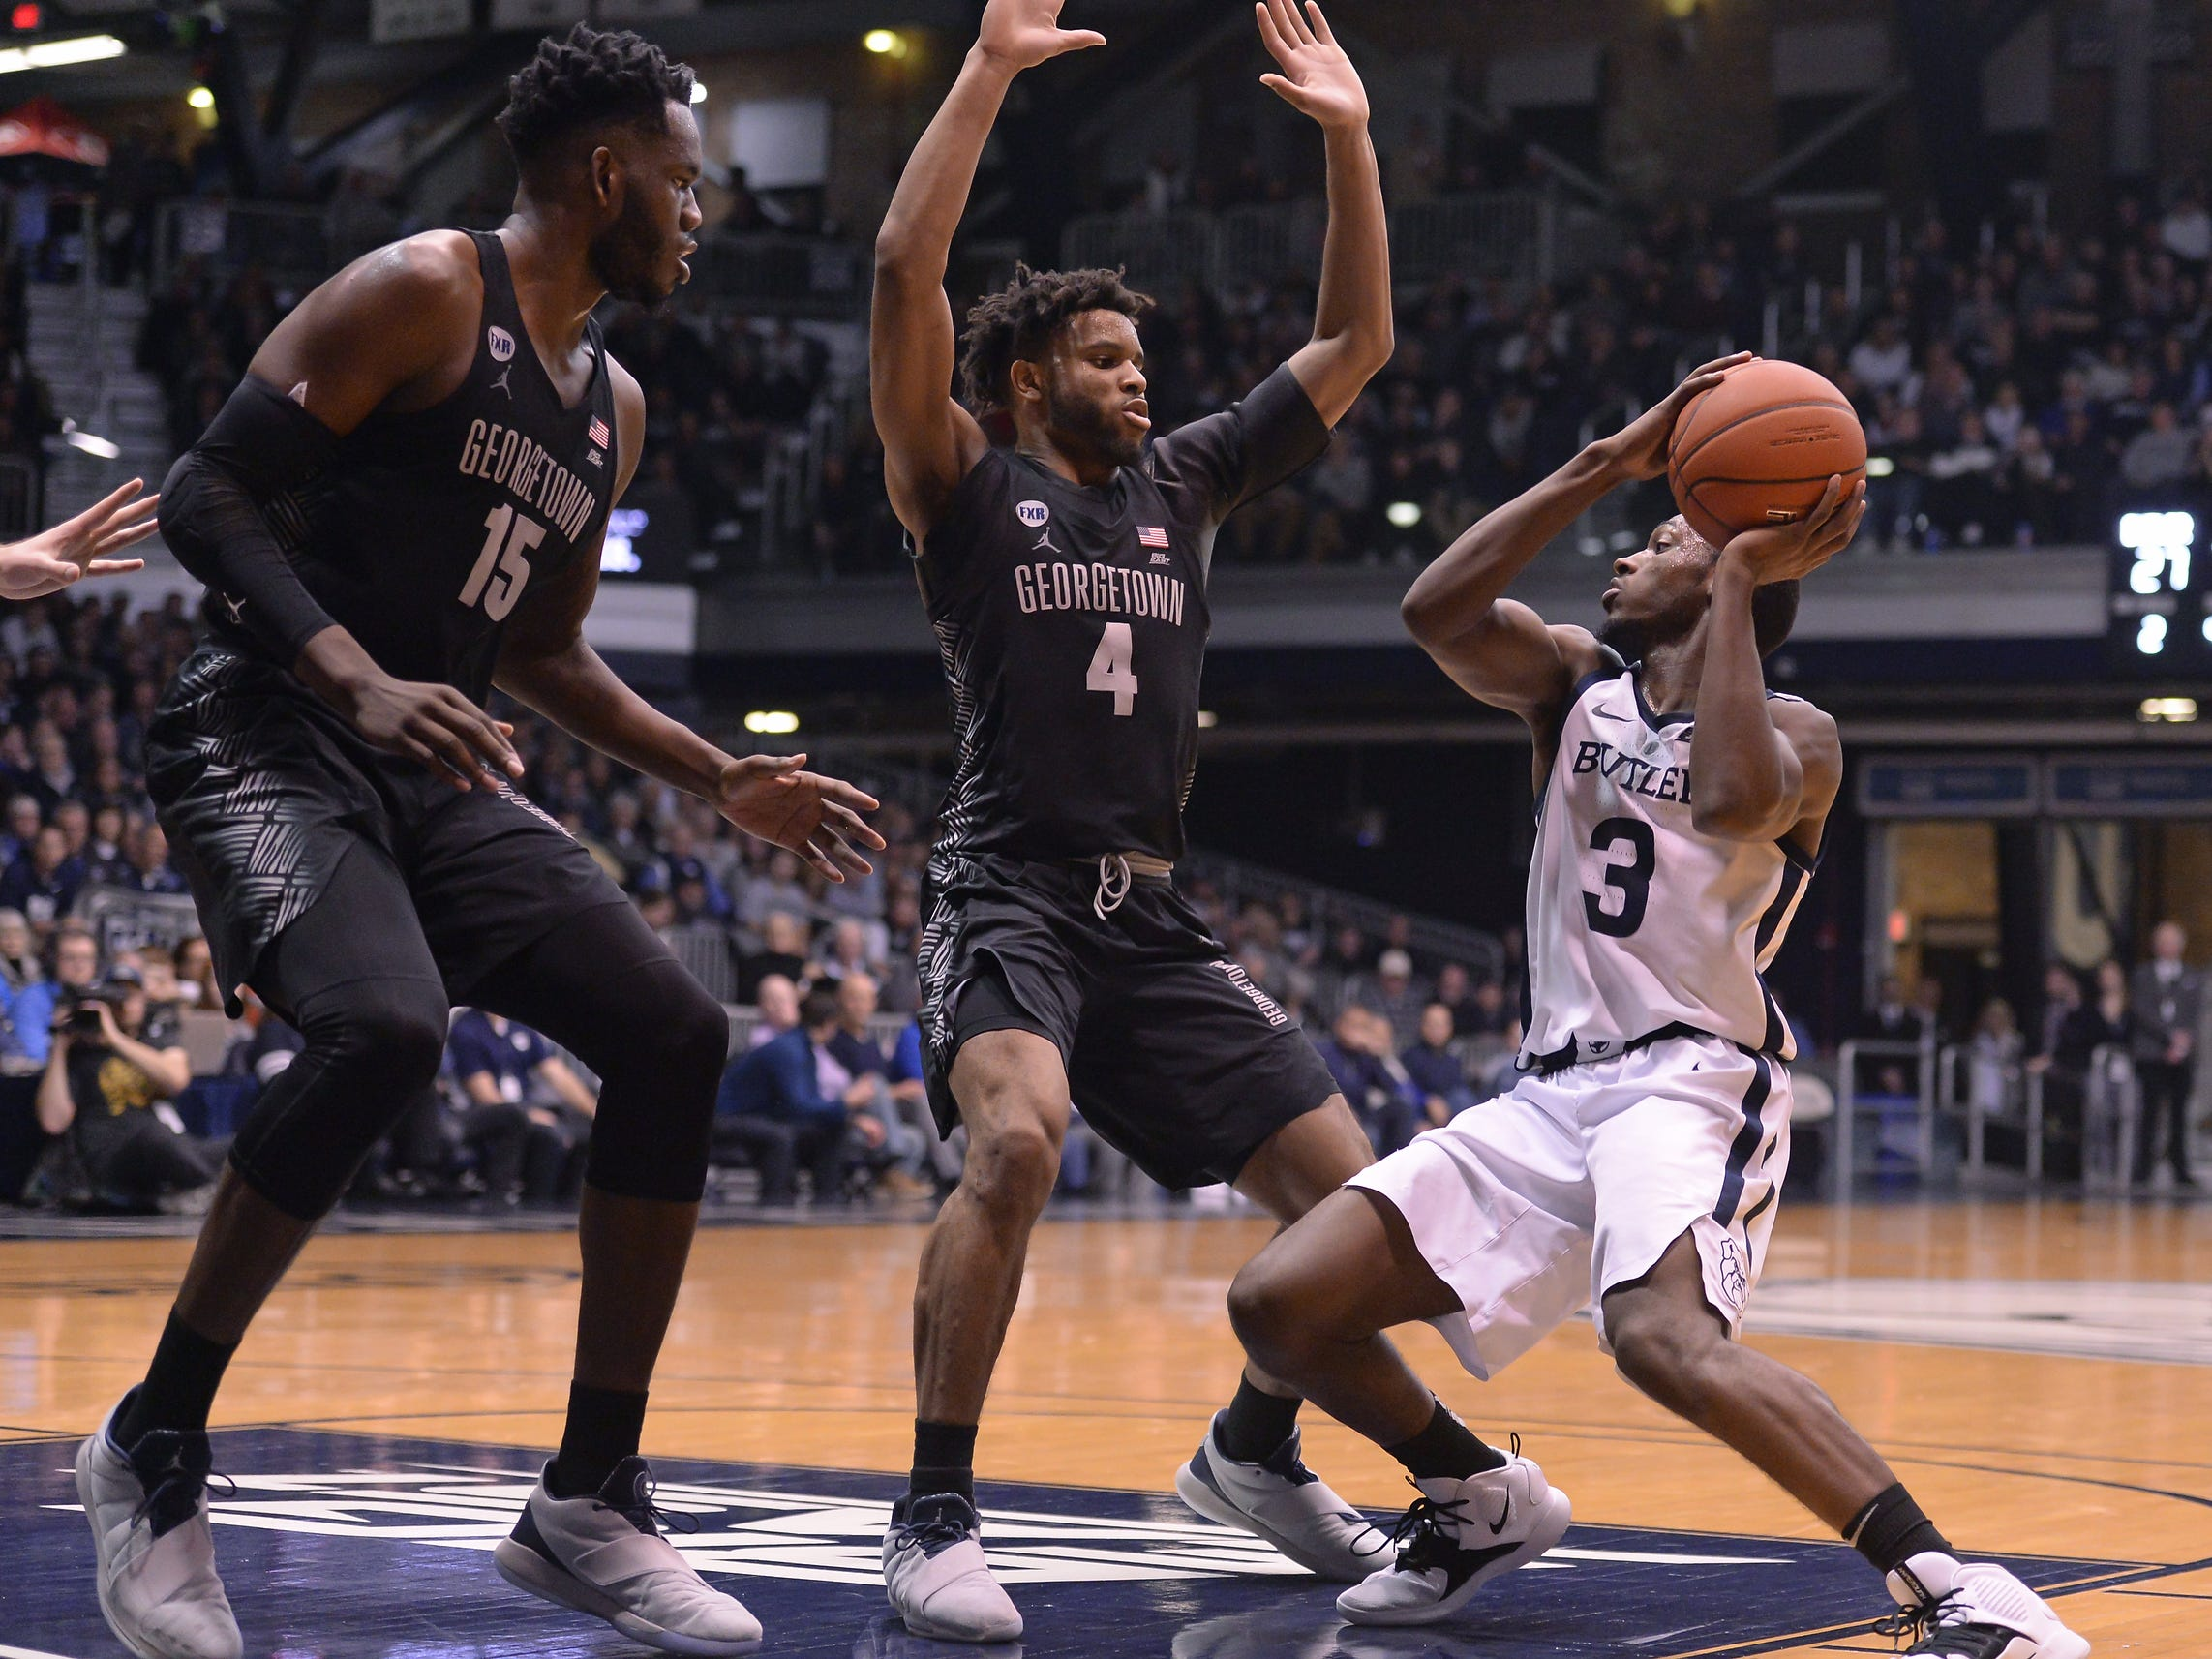 Butler Bulldogs guard Kamar Baldwin (3) looks for an outlet while guarded by Georgetown Hoyas guard Jagan Mosely (4) during the first half of game action between Butler University and Georgetown University, at Hinkle Fieldhouse in Indianapolis, Indiana on Wednesday, Jan. 2, 2019. The Butler Bulldogs fell to the Georgetown Hoyas 84-76.